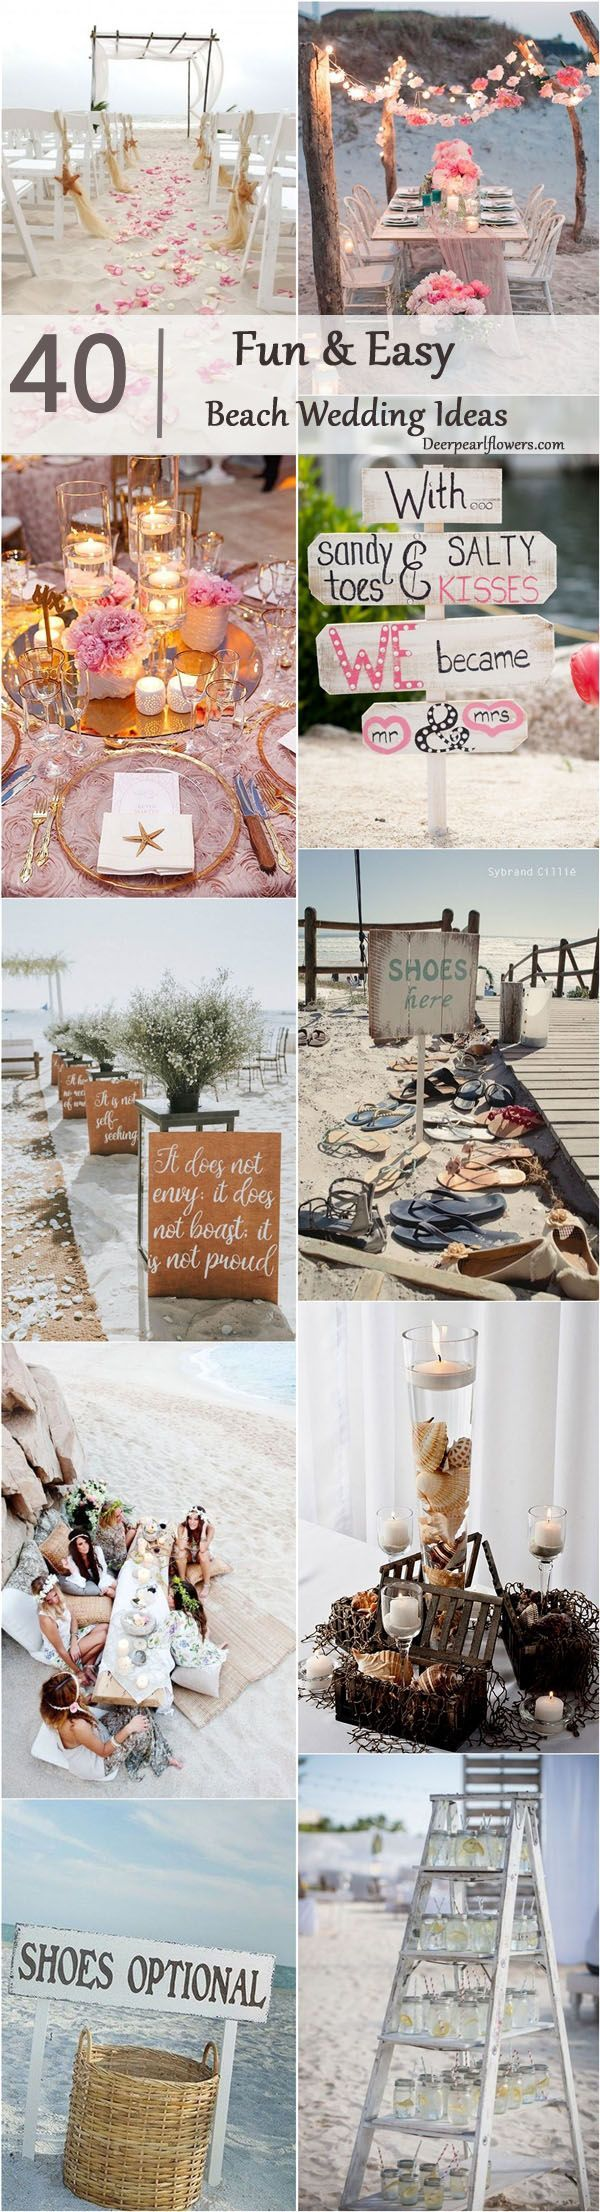 Beach wedding theme ideas / http://www.deerpearlflowers.com/fun-and-easy-beach-wedding-ideas/2/